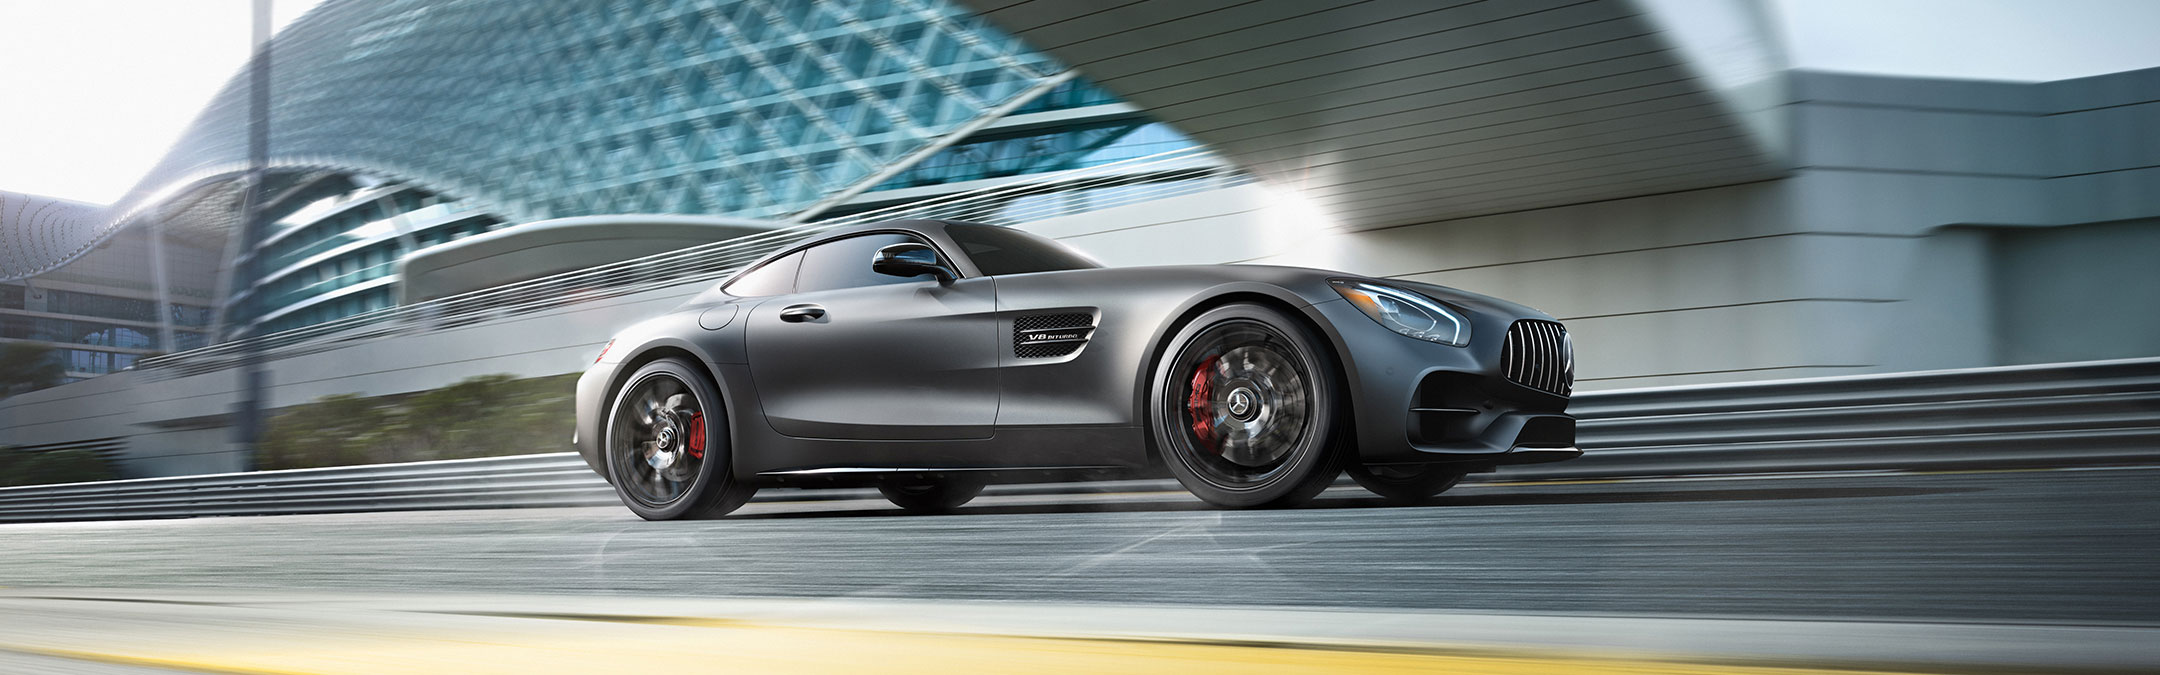 2018 Mercedes-AMG GT, GT S and GT C Coupe Performance